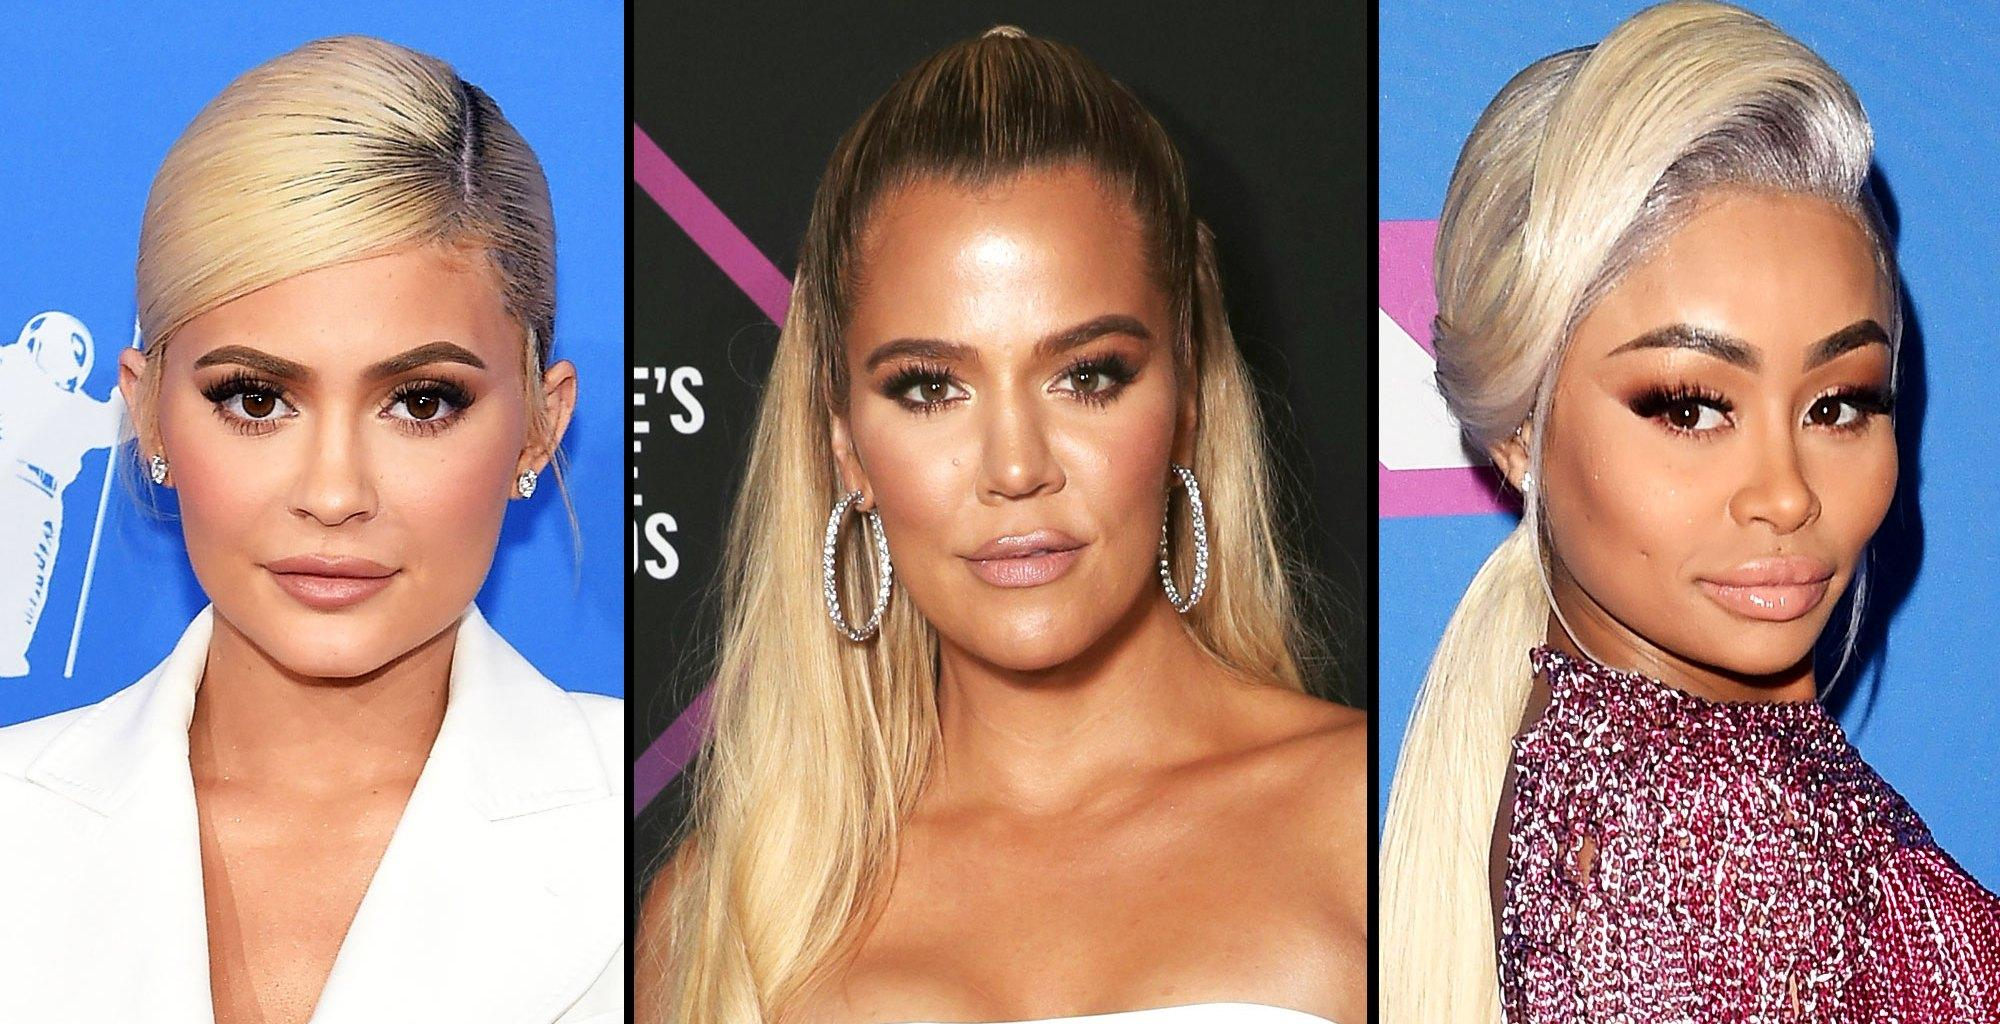 Blac Chyna Brings To Court Shocking Emails Between Kardashian Sisters About Almost Ending KUWK To Save Family's Reputation - Details!